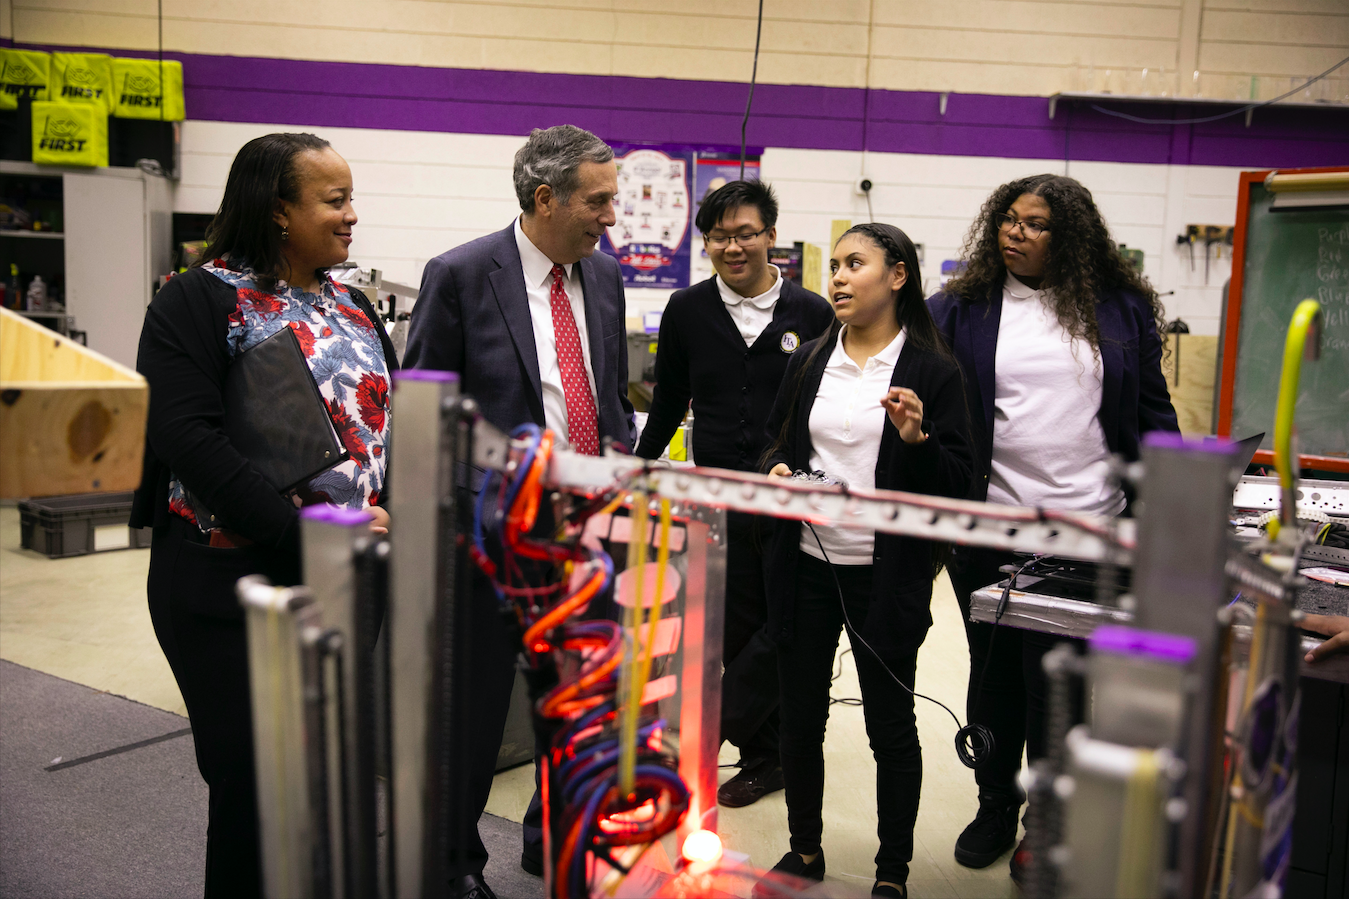 Students at International Technology Academy in Pontiac, Michigan give President Bacow and HGSE Dean Long a tour of the Robotics Lab.